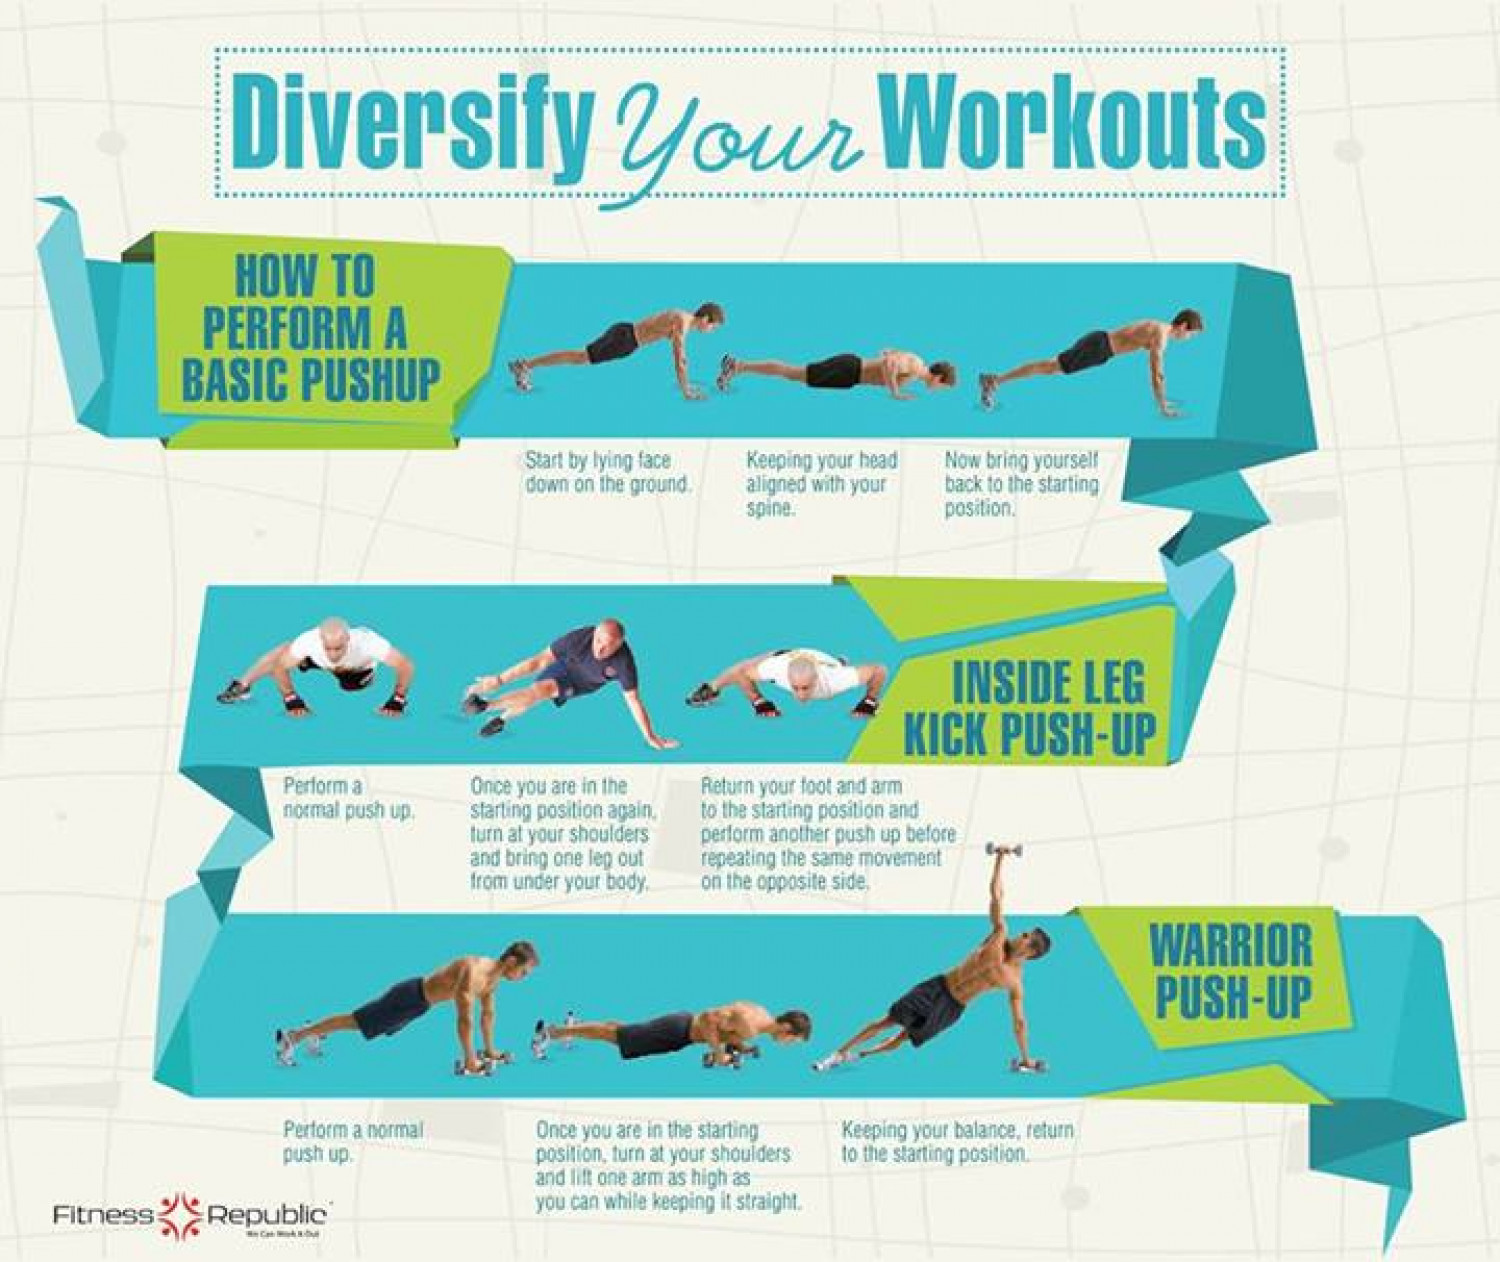 Diversify Your Workouts Infographic